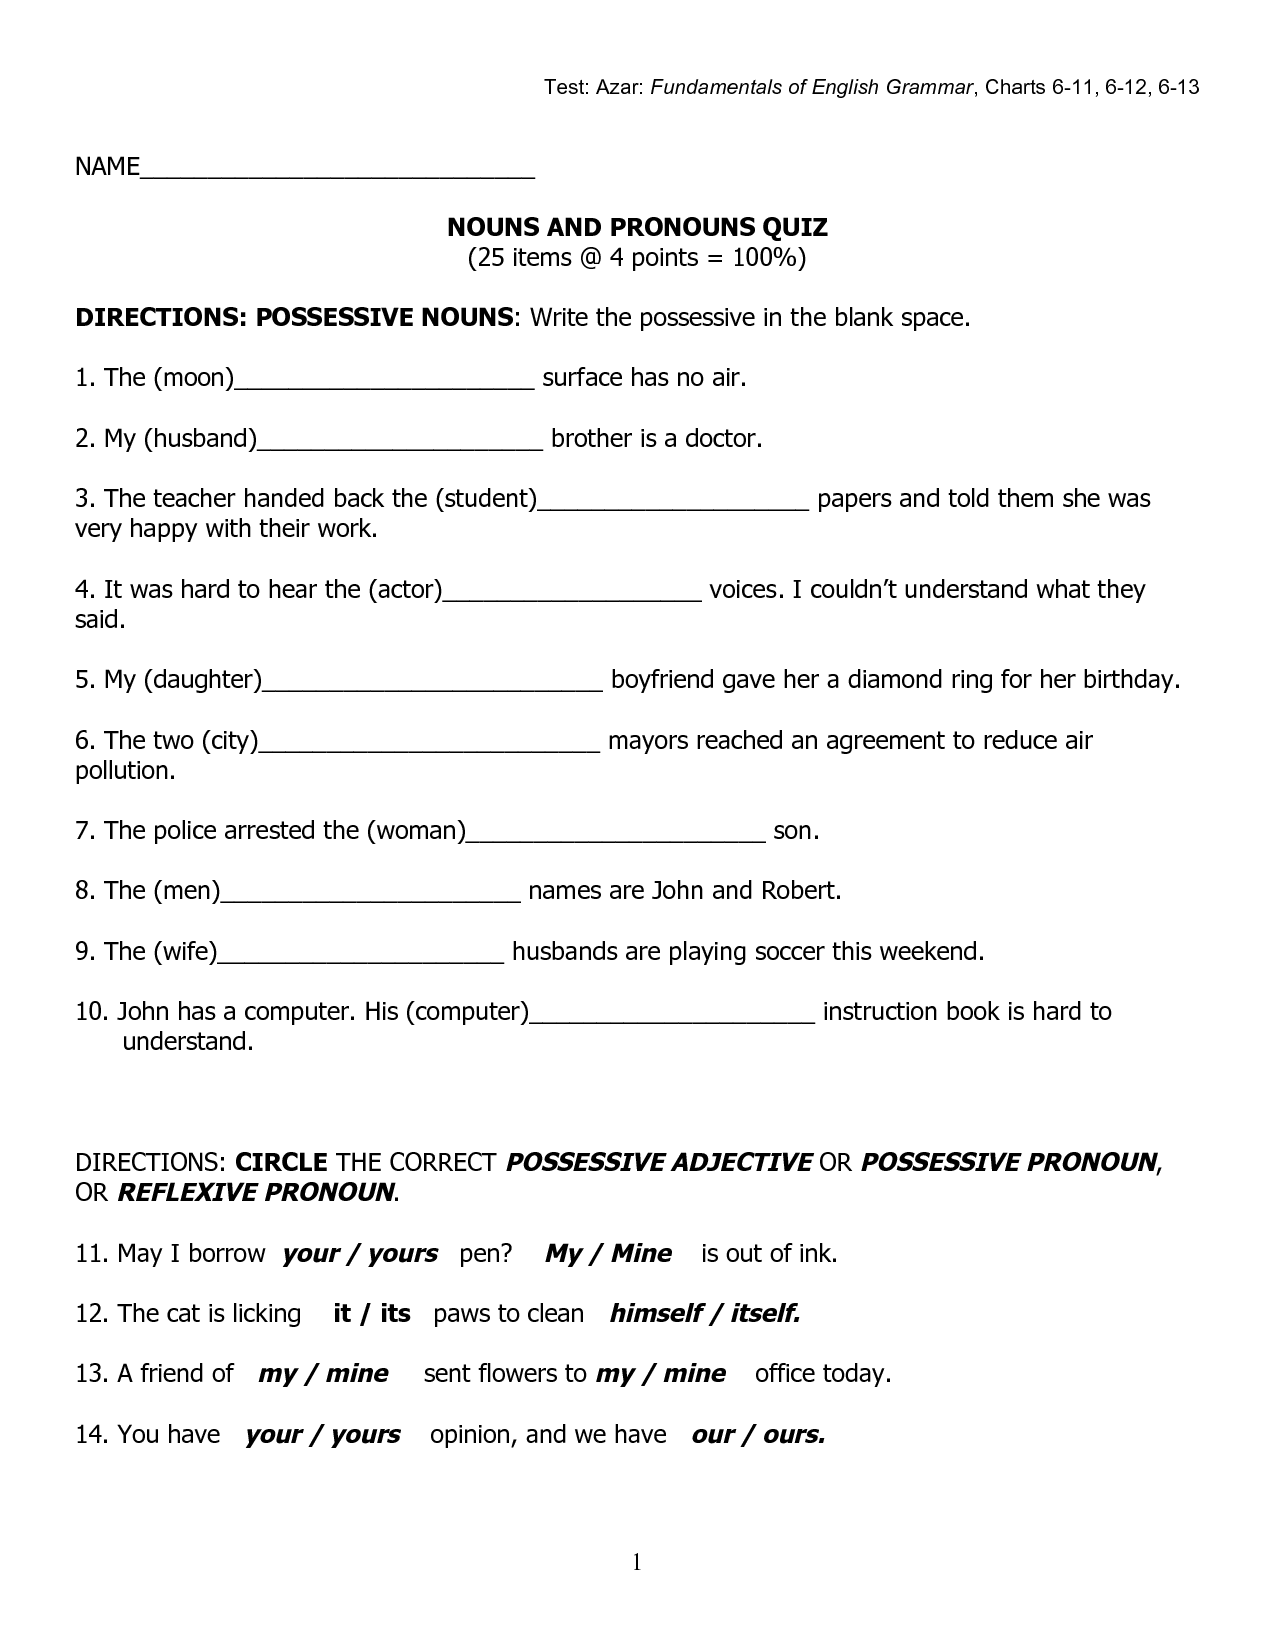 15 Best Images Of Free Possessive Nouns Printable